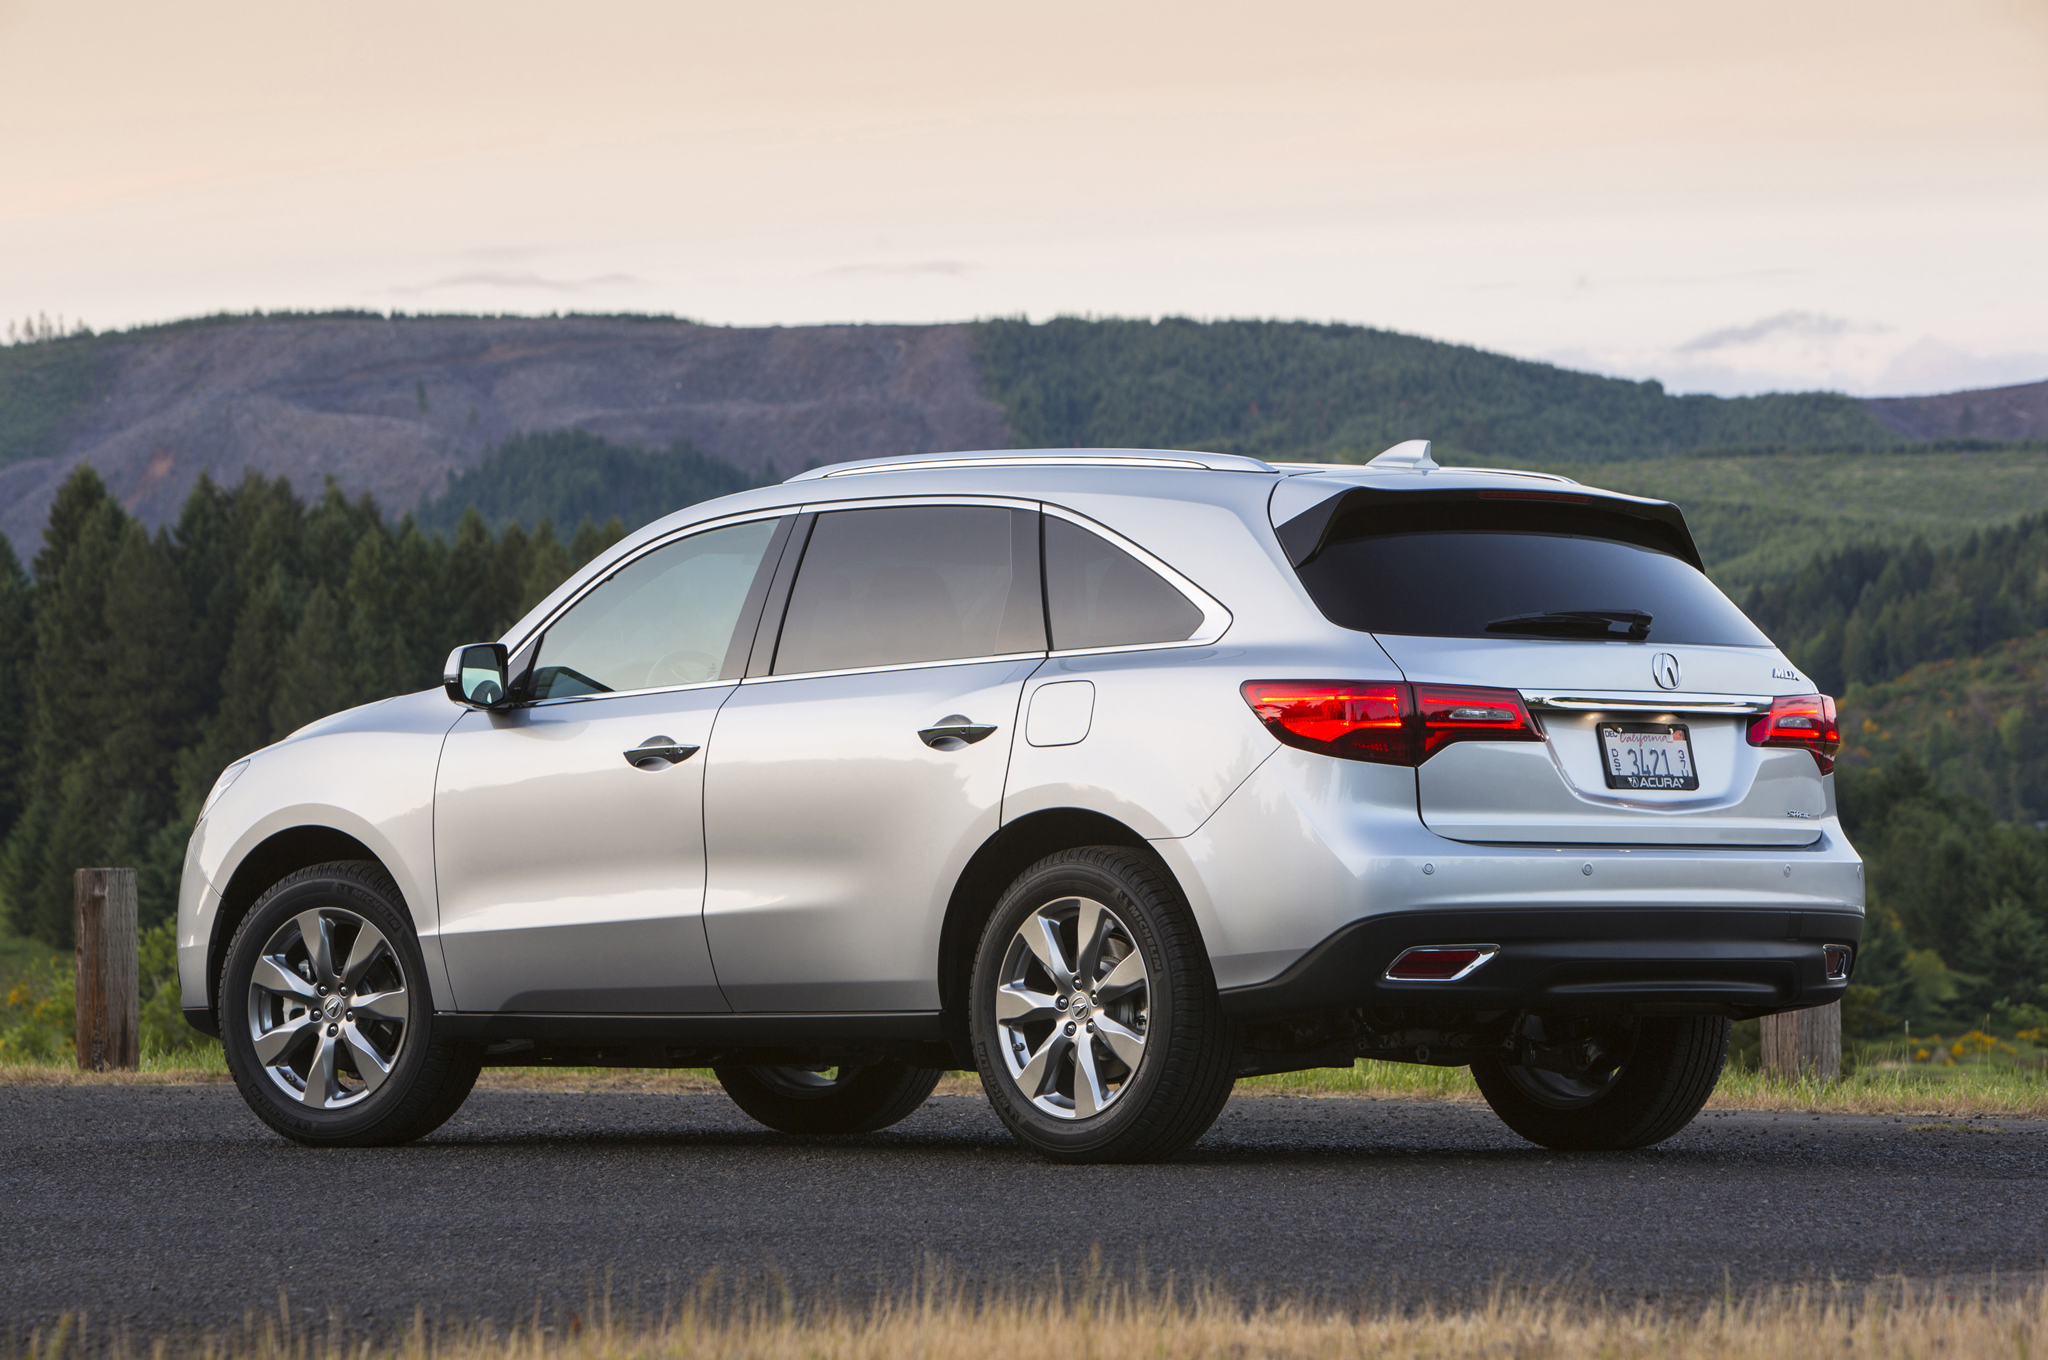 2014 Acura Mdx Rear Three Quarters 08 Free Download Image Of